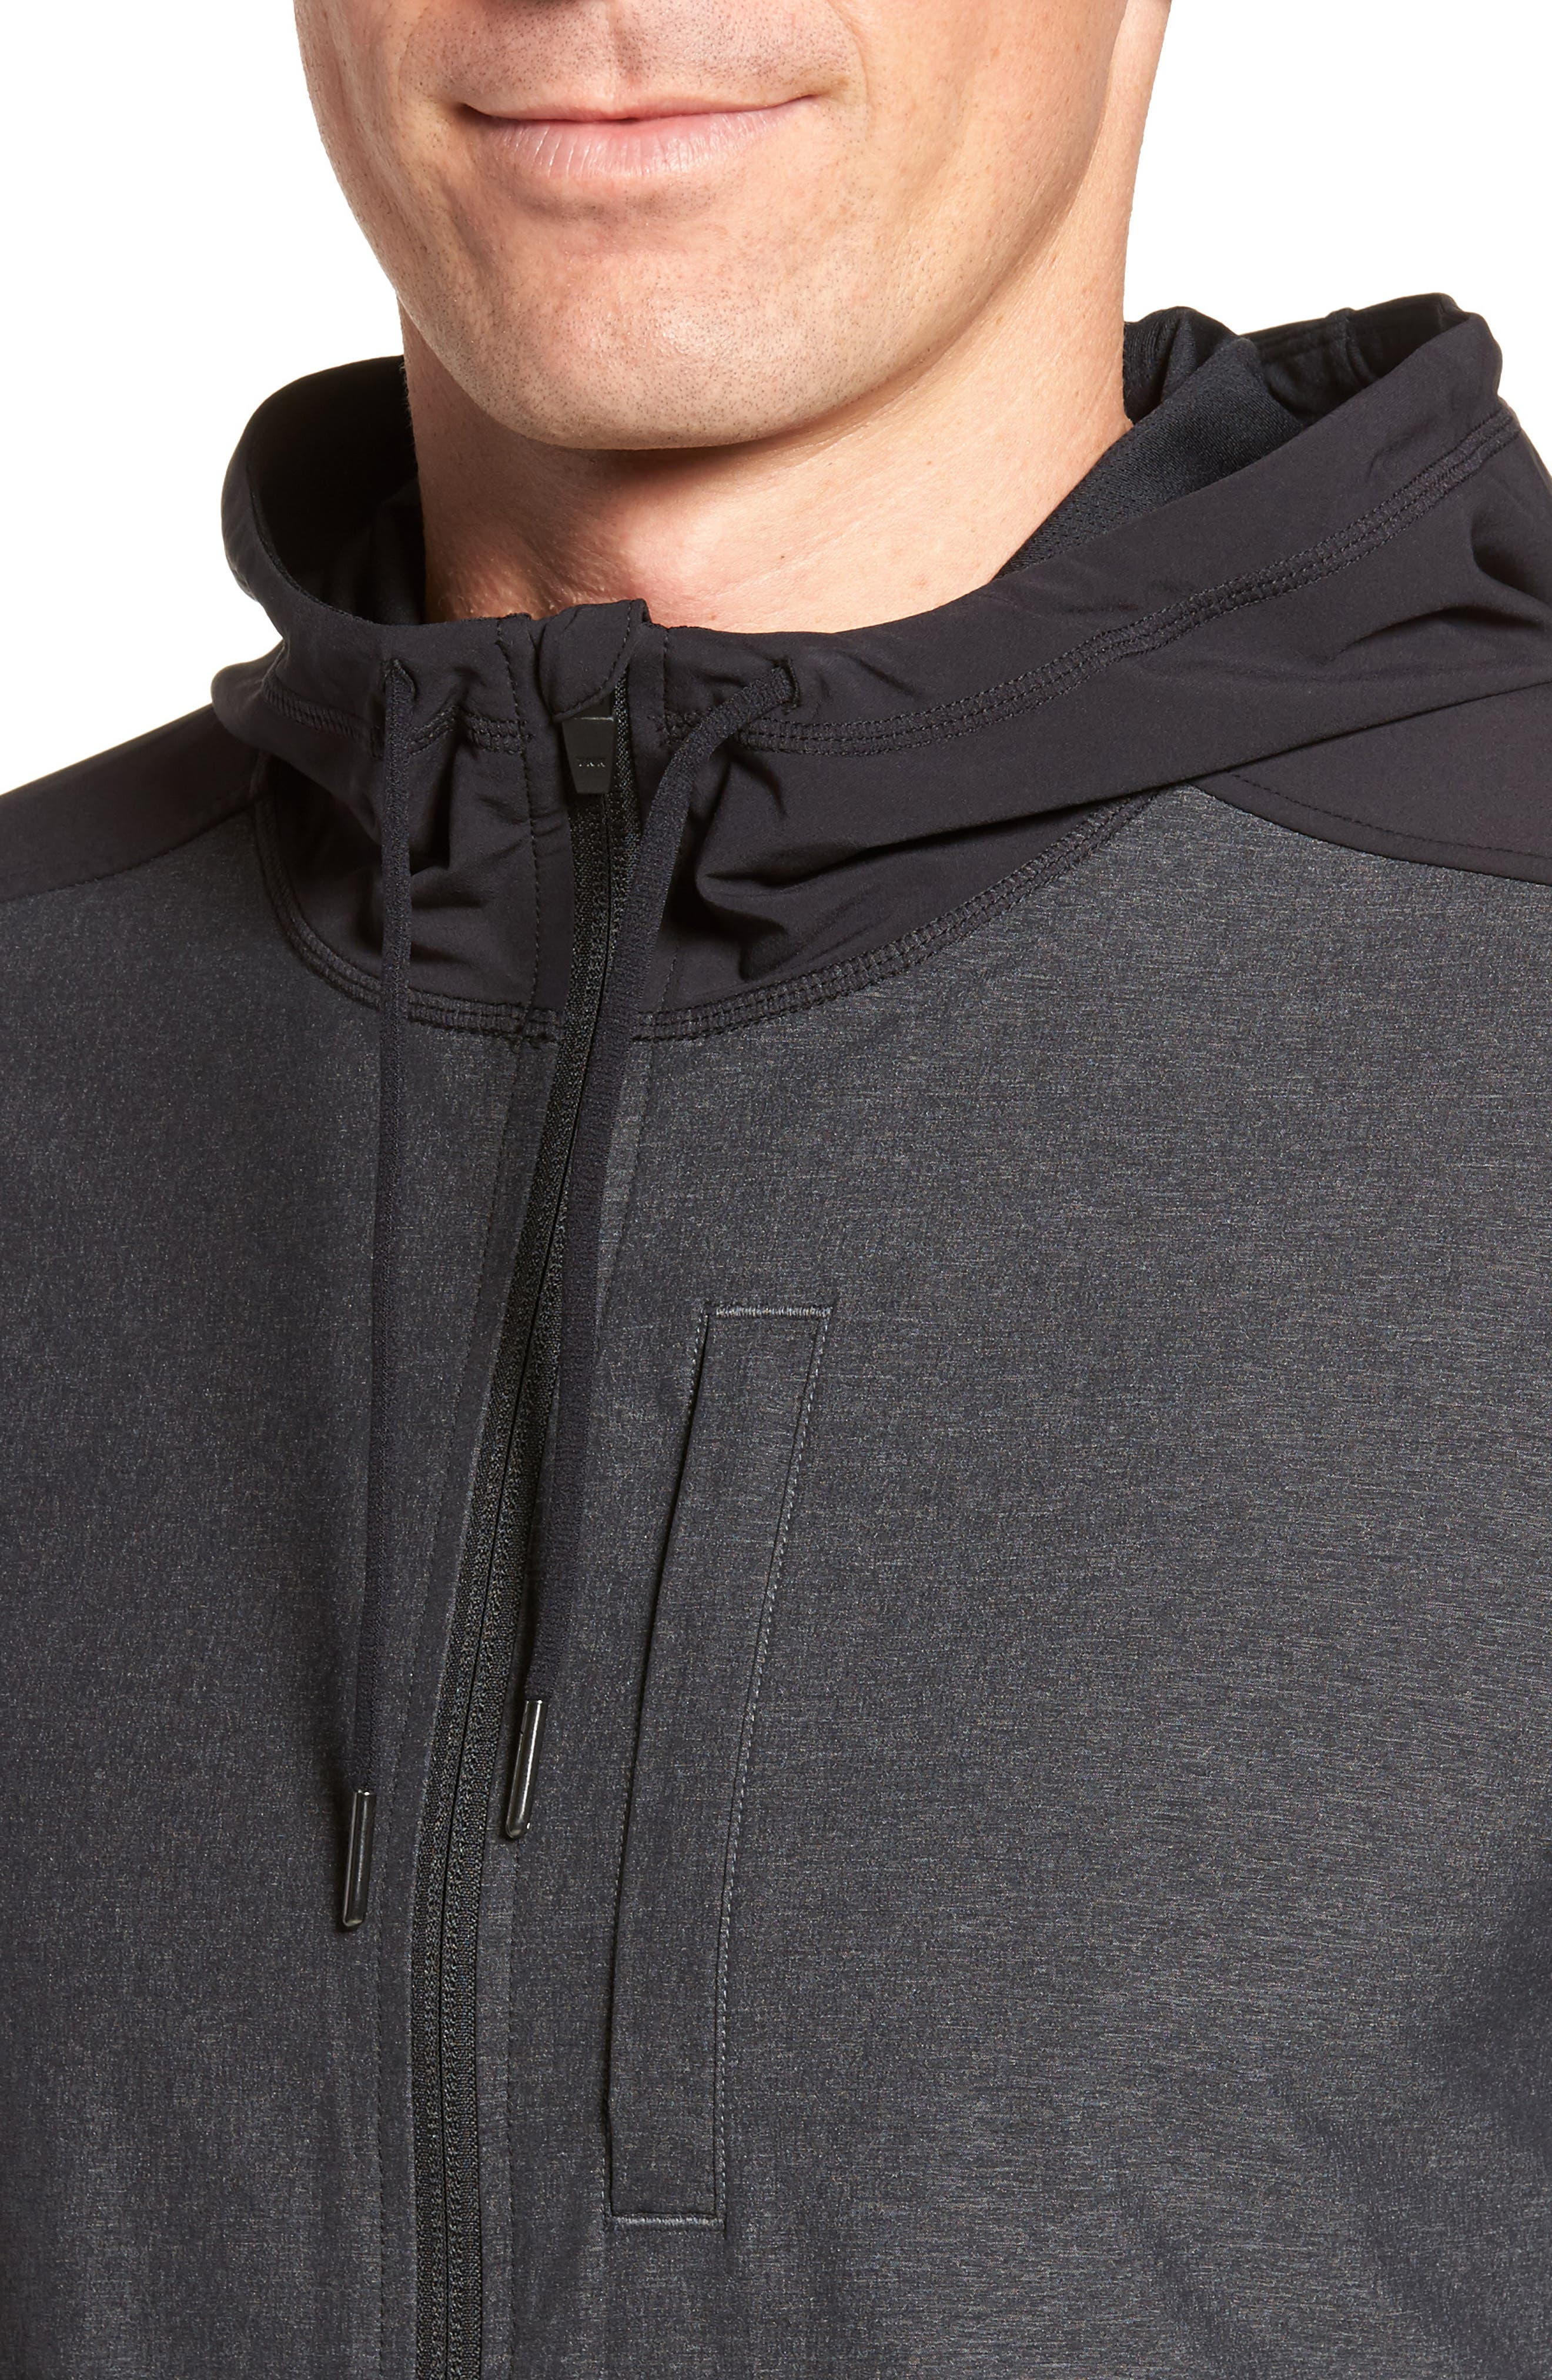 Knit & Woven Hoodie,                             Alternate thumbnail 4, color,                             021